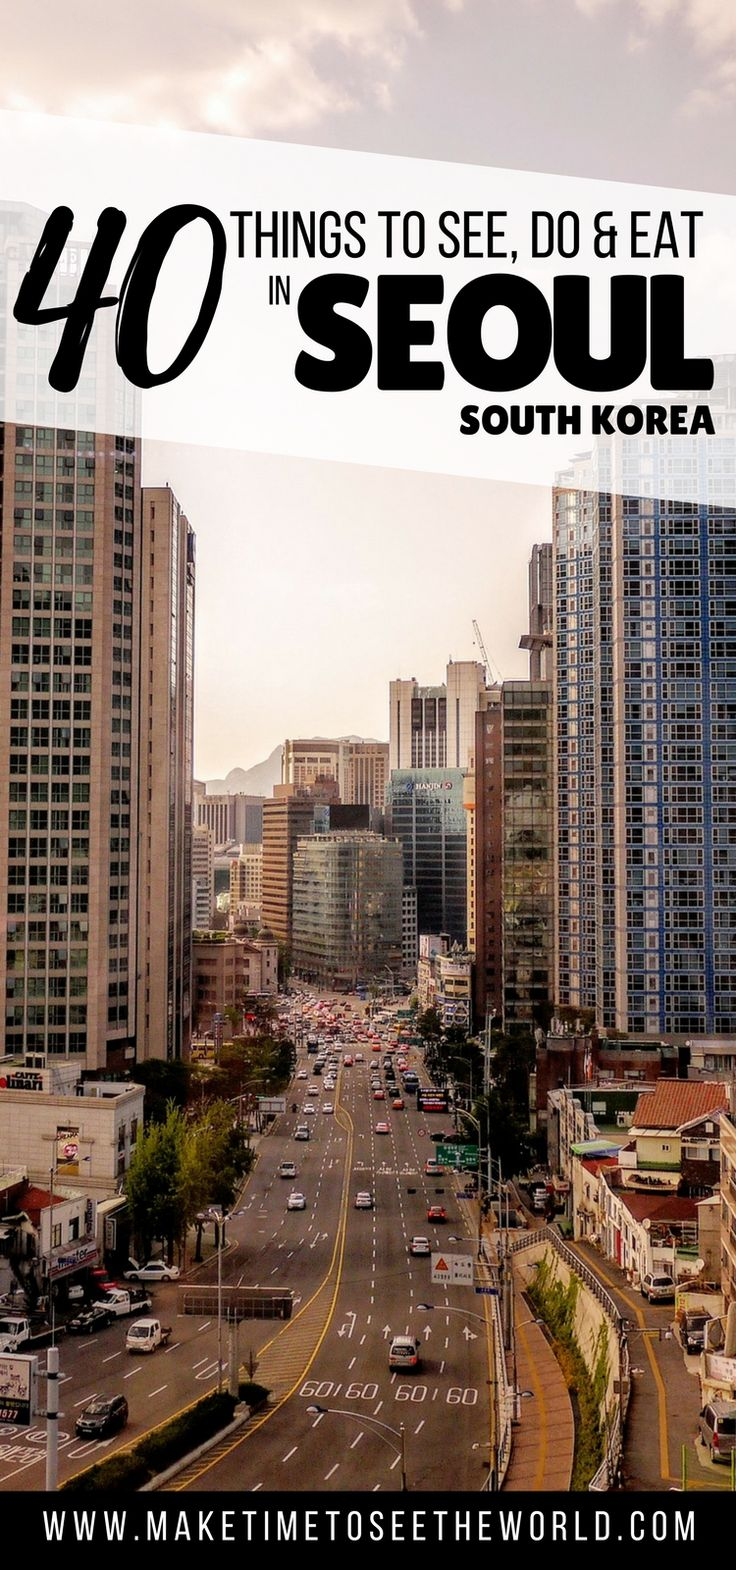 Click to read the Ultimate Guide to Seoul Korea Things To Do, Where To Stay and What To Eat written by a local who knows the place inside and out! If you like Hiking, Spas, Palaces, Street Food, Shopping, Nightlife, Cool Cafes or Wacky Things To Do - we've got you covered! ********************************************************************************************* Seoul Korea Things To Do   Seoul South Korea Things To Do   Things to do in Seoul South Korea